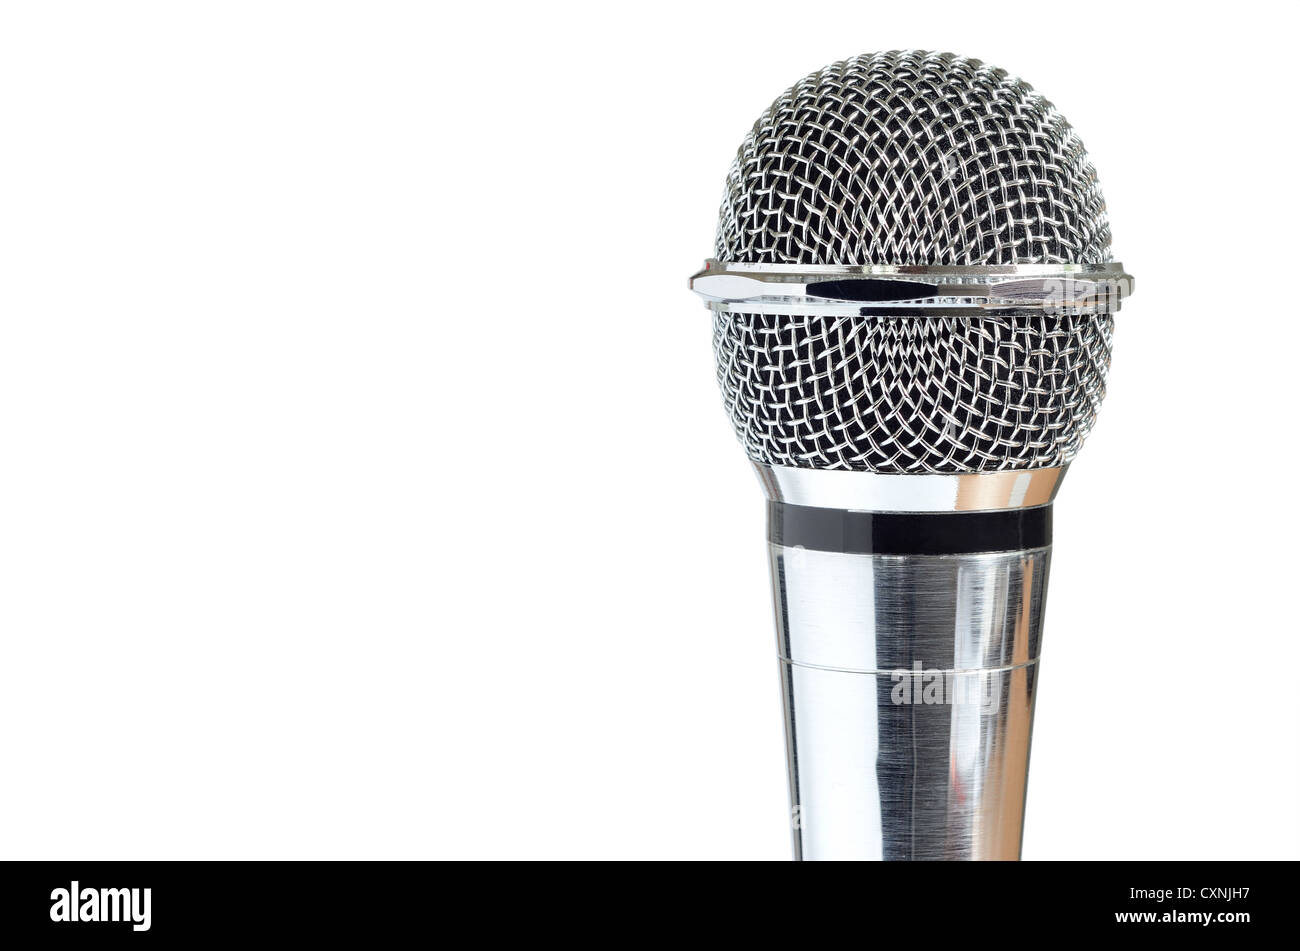 closeup of vintage microphone isolated over white background - Stock Image